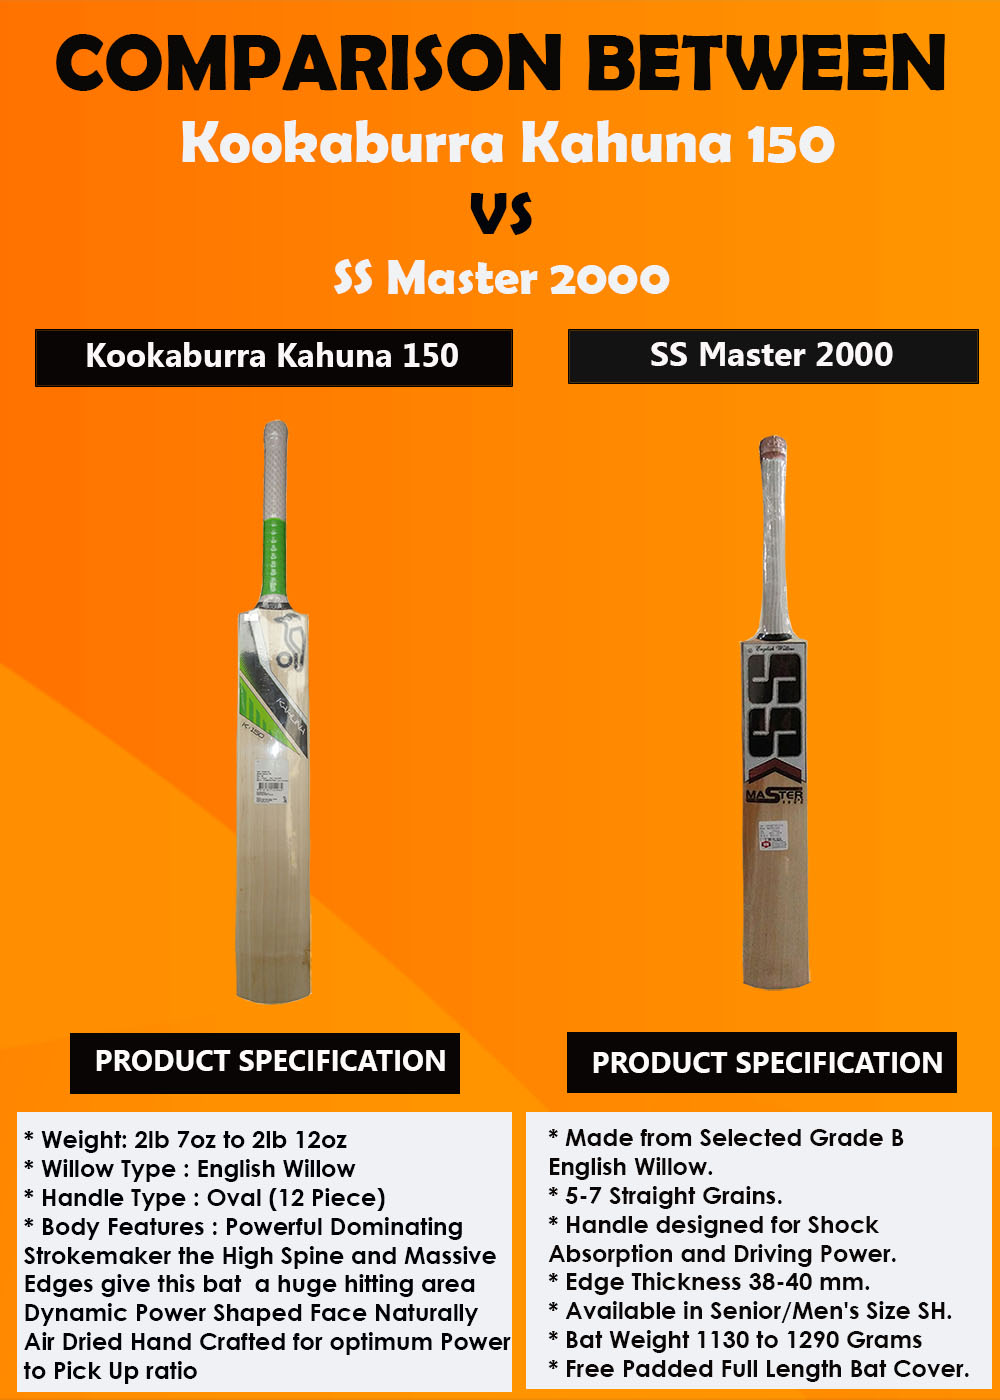 6bc85128da6 Comparison of Kookaburra Kahuna 150 Vs SS Master 2000 Cricket Bat ...